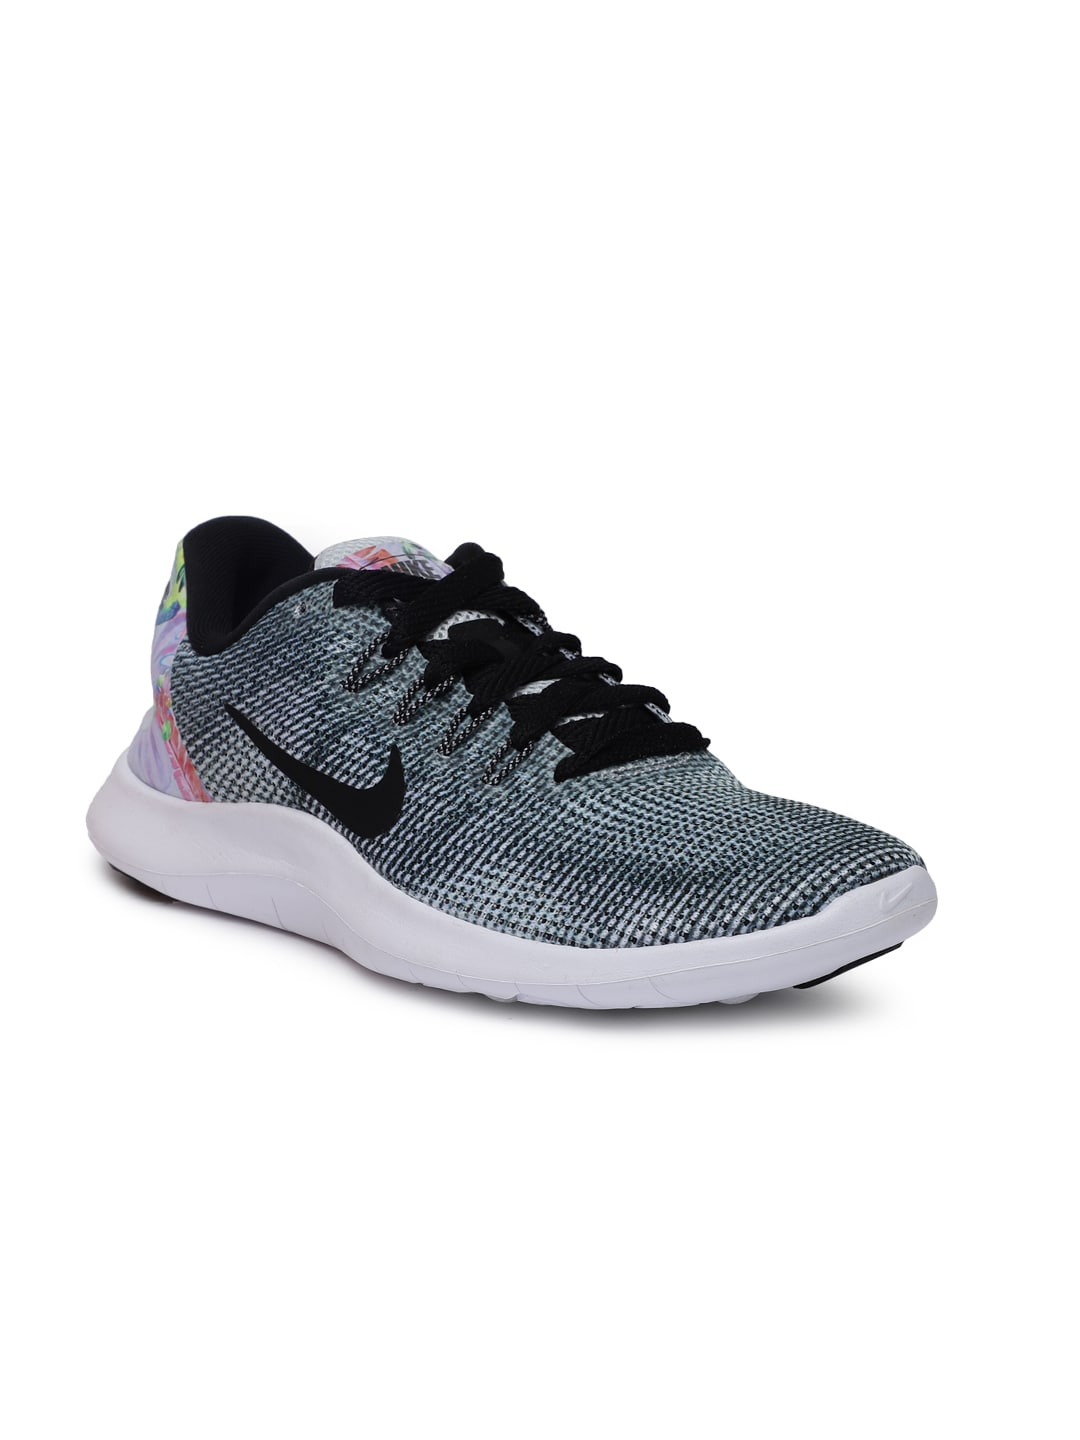 893d80fffe1 Nike Women Black FLEX 2018 RN PRM Running Shoes